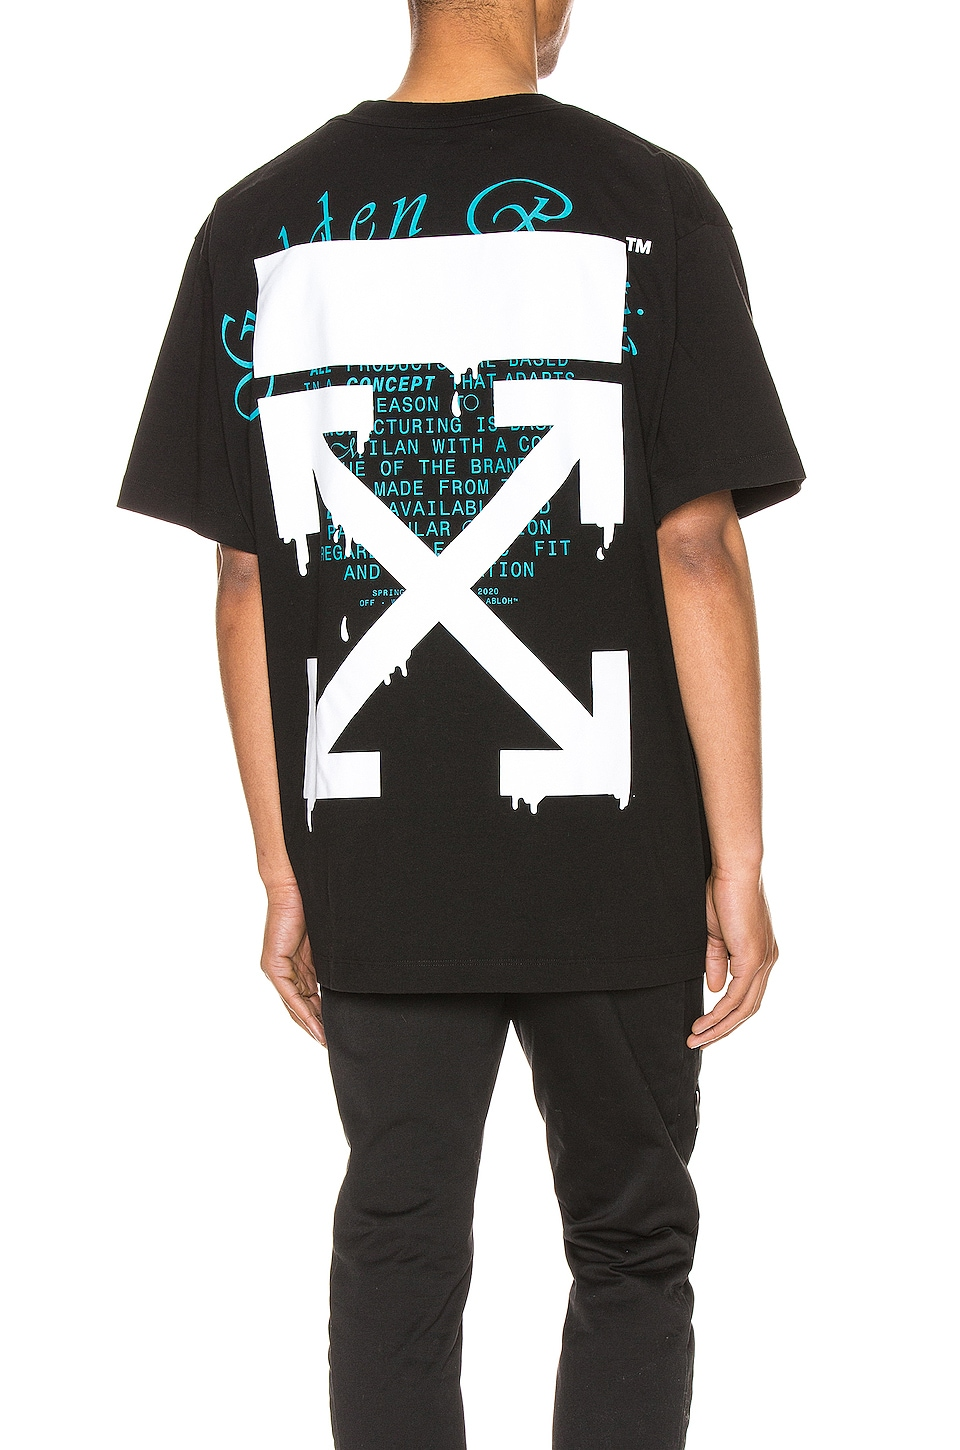 OFF-WHITE Dripping Arrows Over Tee in Black & White